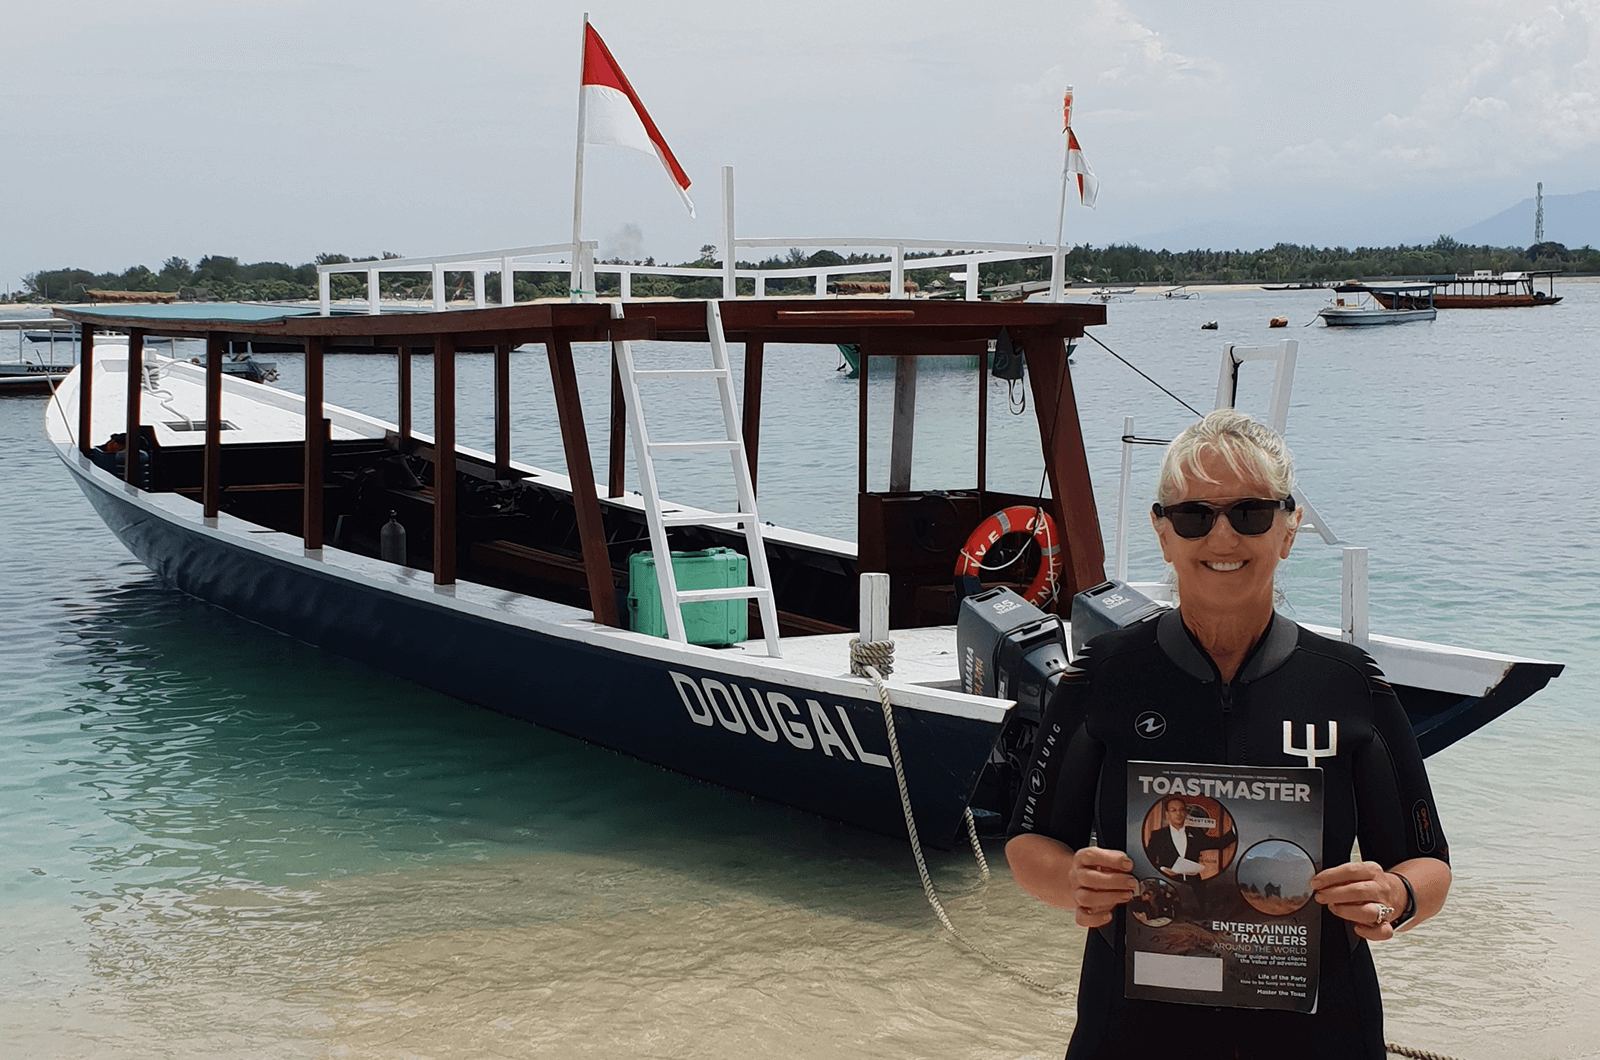 Debbie McCarthy of Brisbane, Australia, stands on the beach of the Gili Islands, Lombok, Indonesia, after scuba diving.